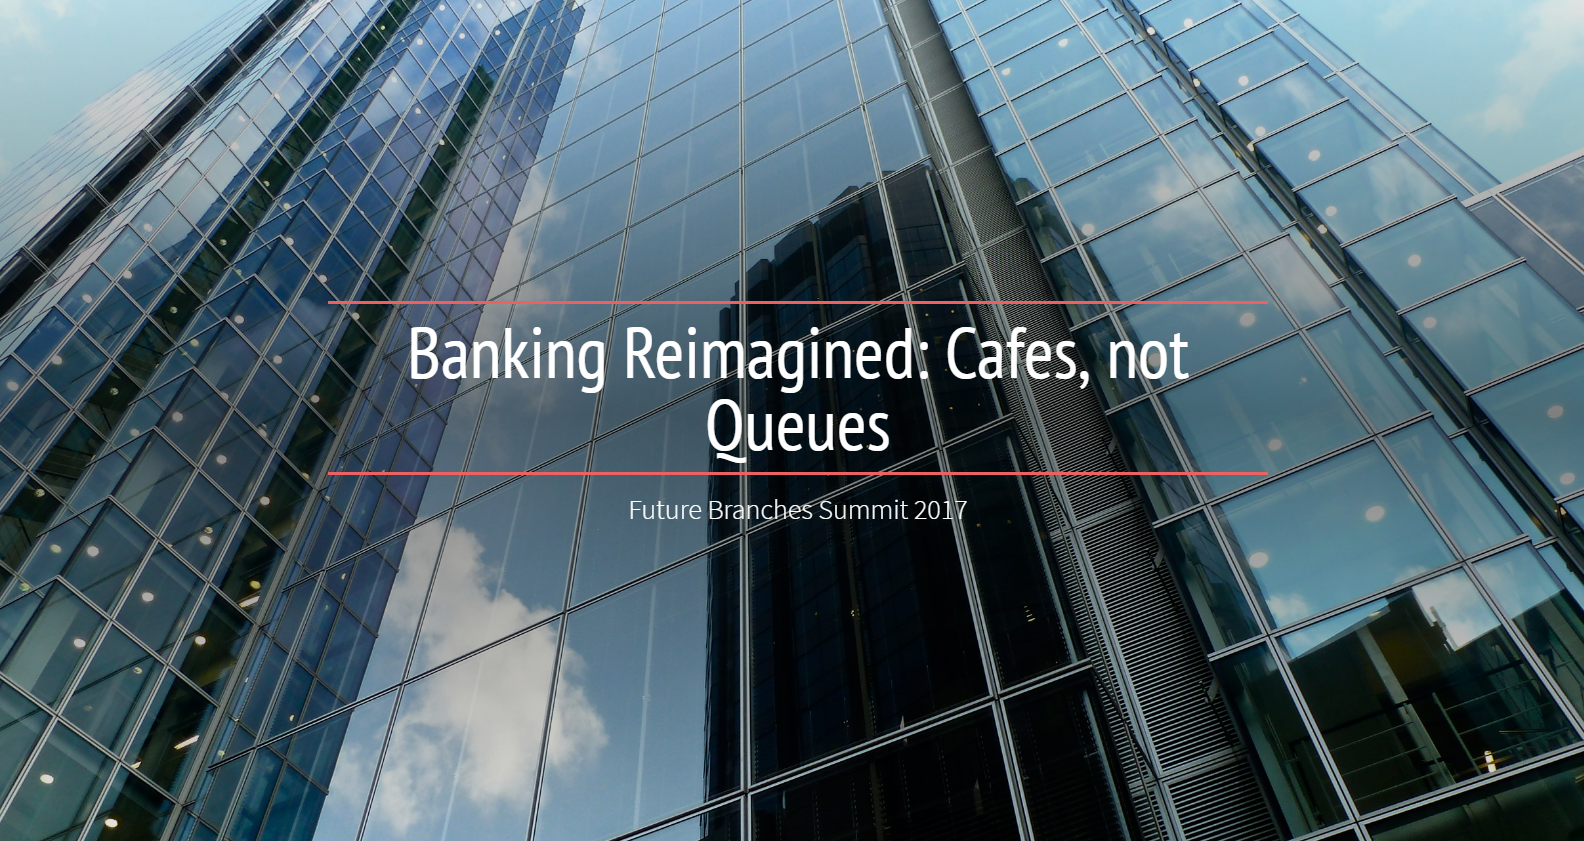 Banking Reimagined: Cafes not Queues